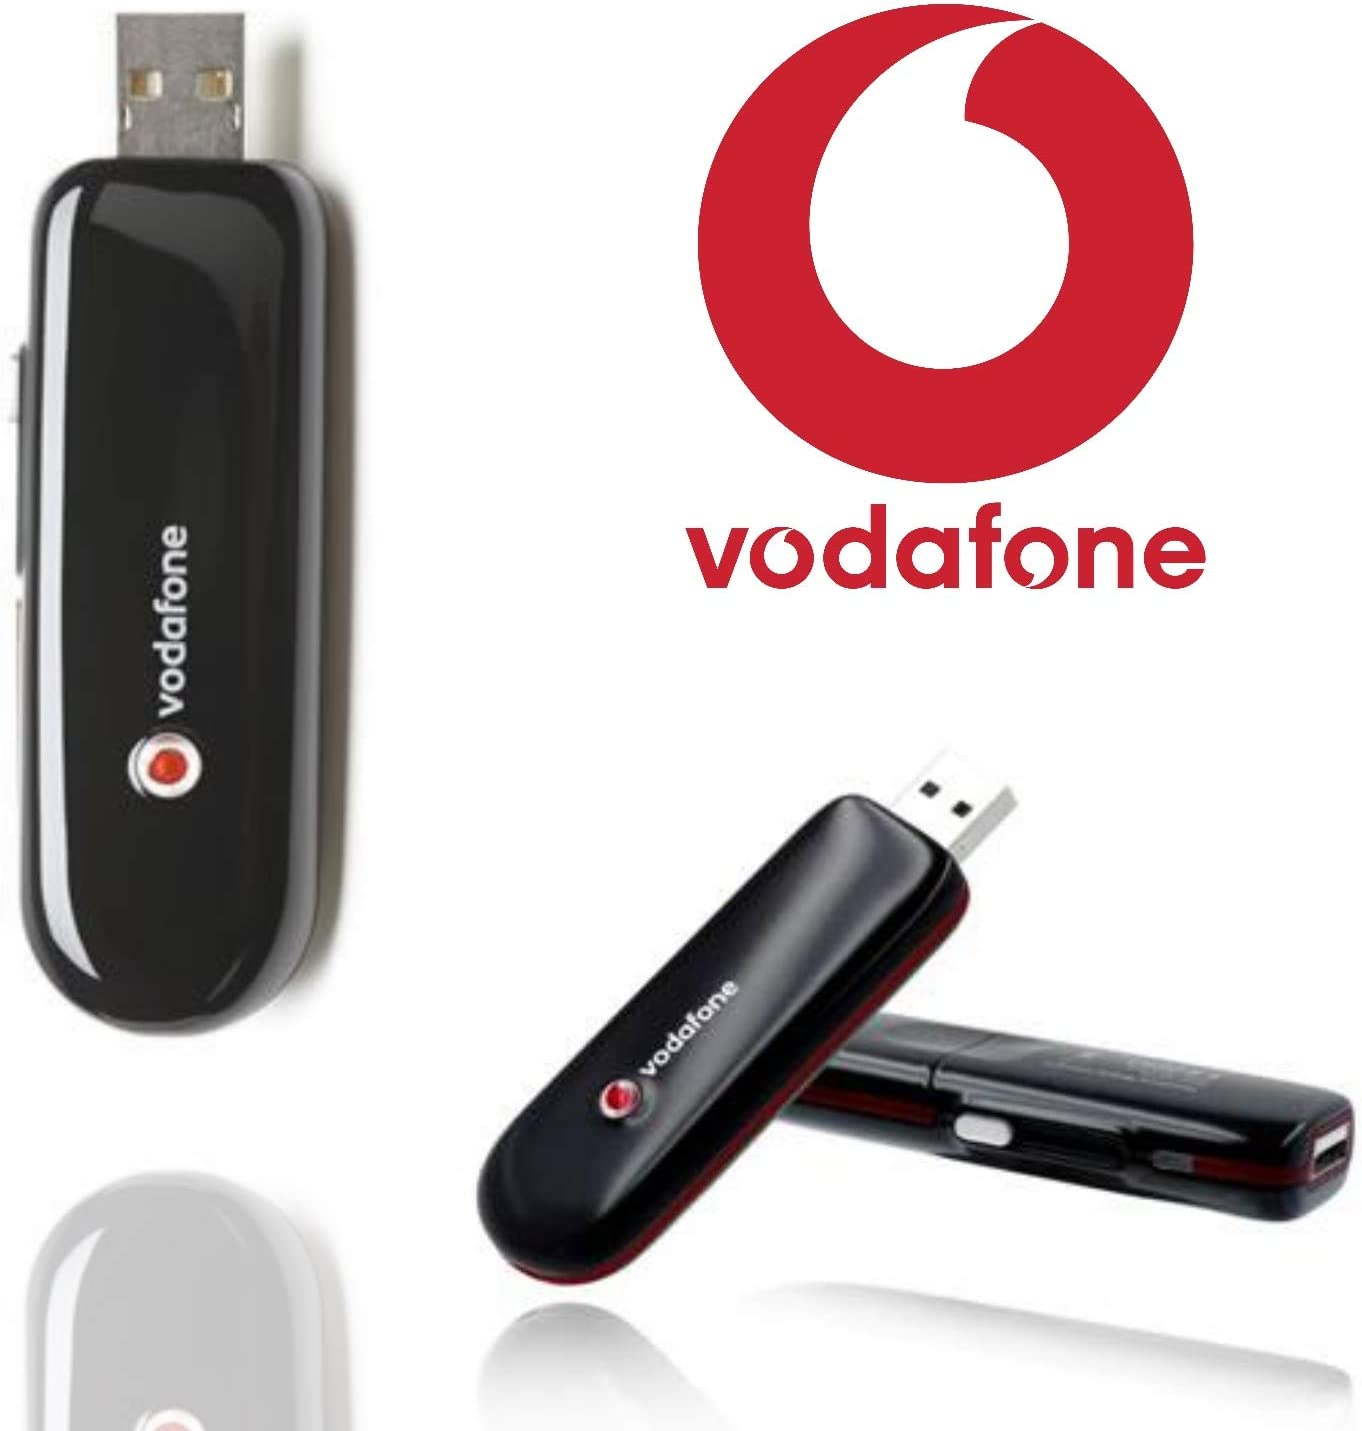 Vodafone K3760 USB Modem Stick Pro Mobile Laptop Broadband Internet Black